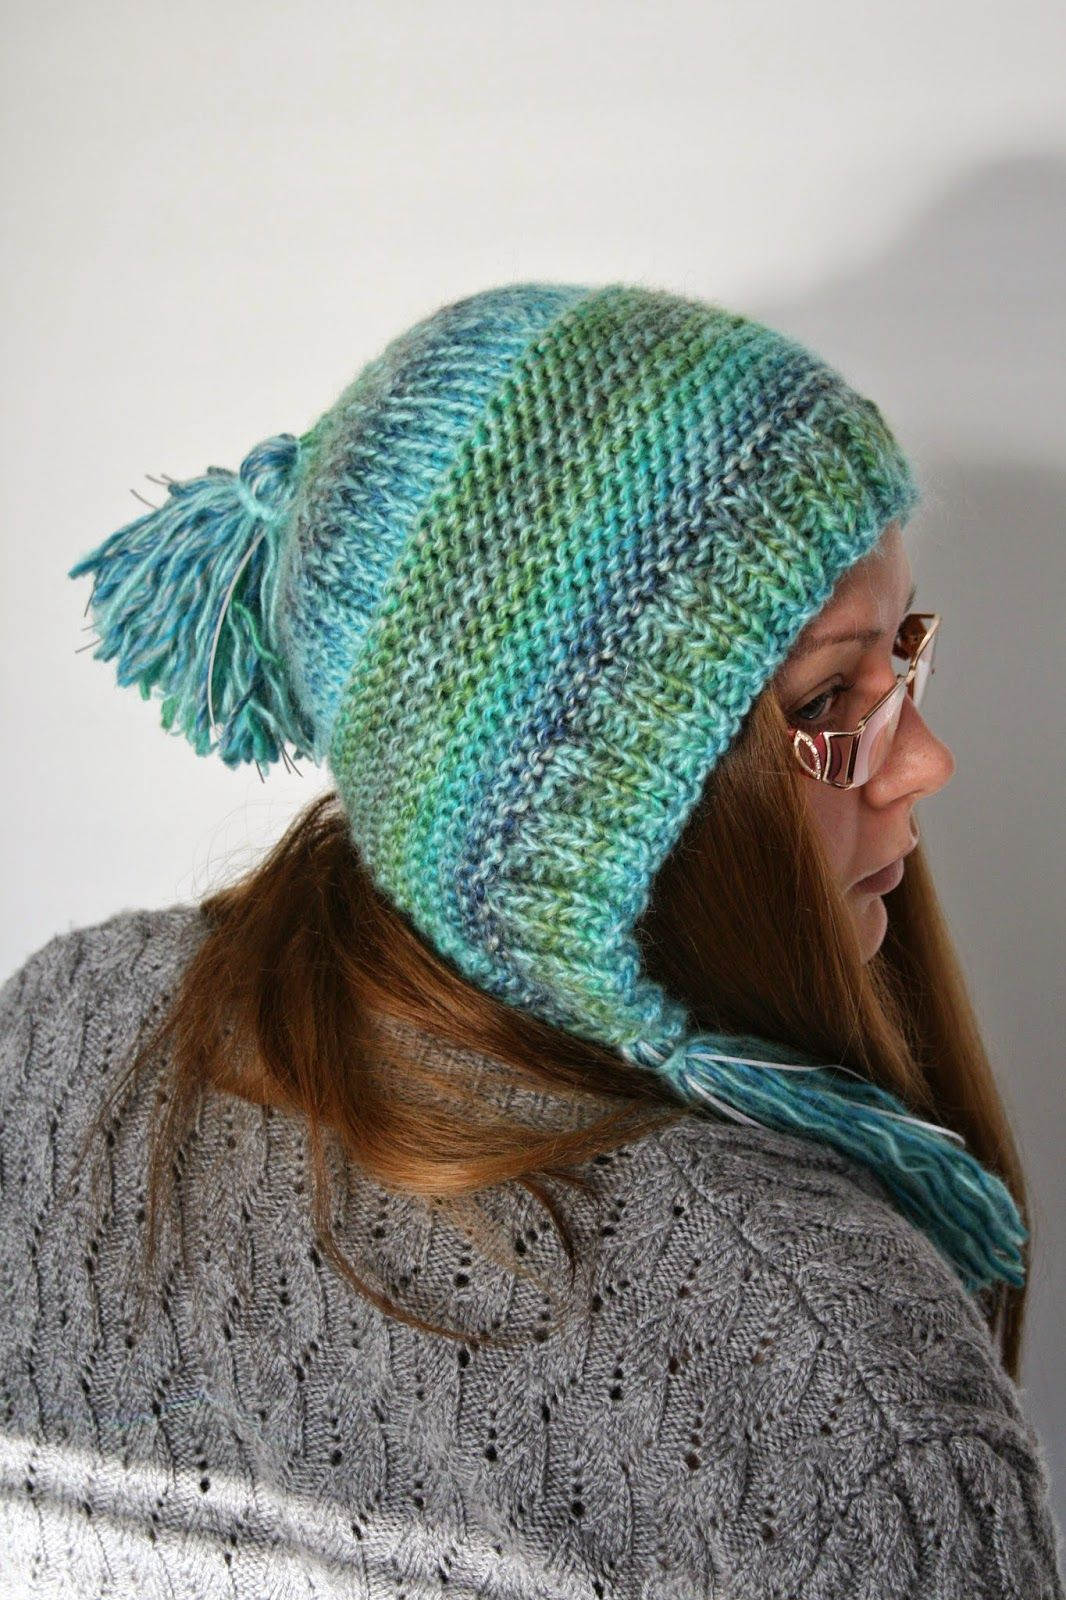 My first Capucine. Made with Ice Yarns Donna & Novita Rose. http://www.ravelry.com/patterns/library/capucine